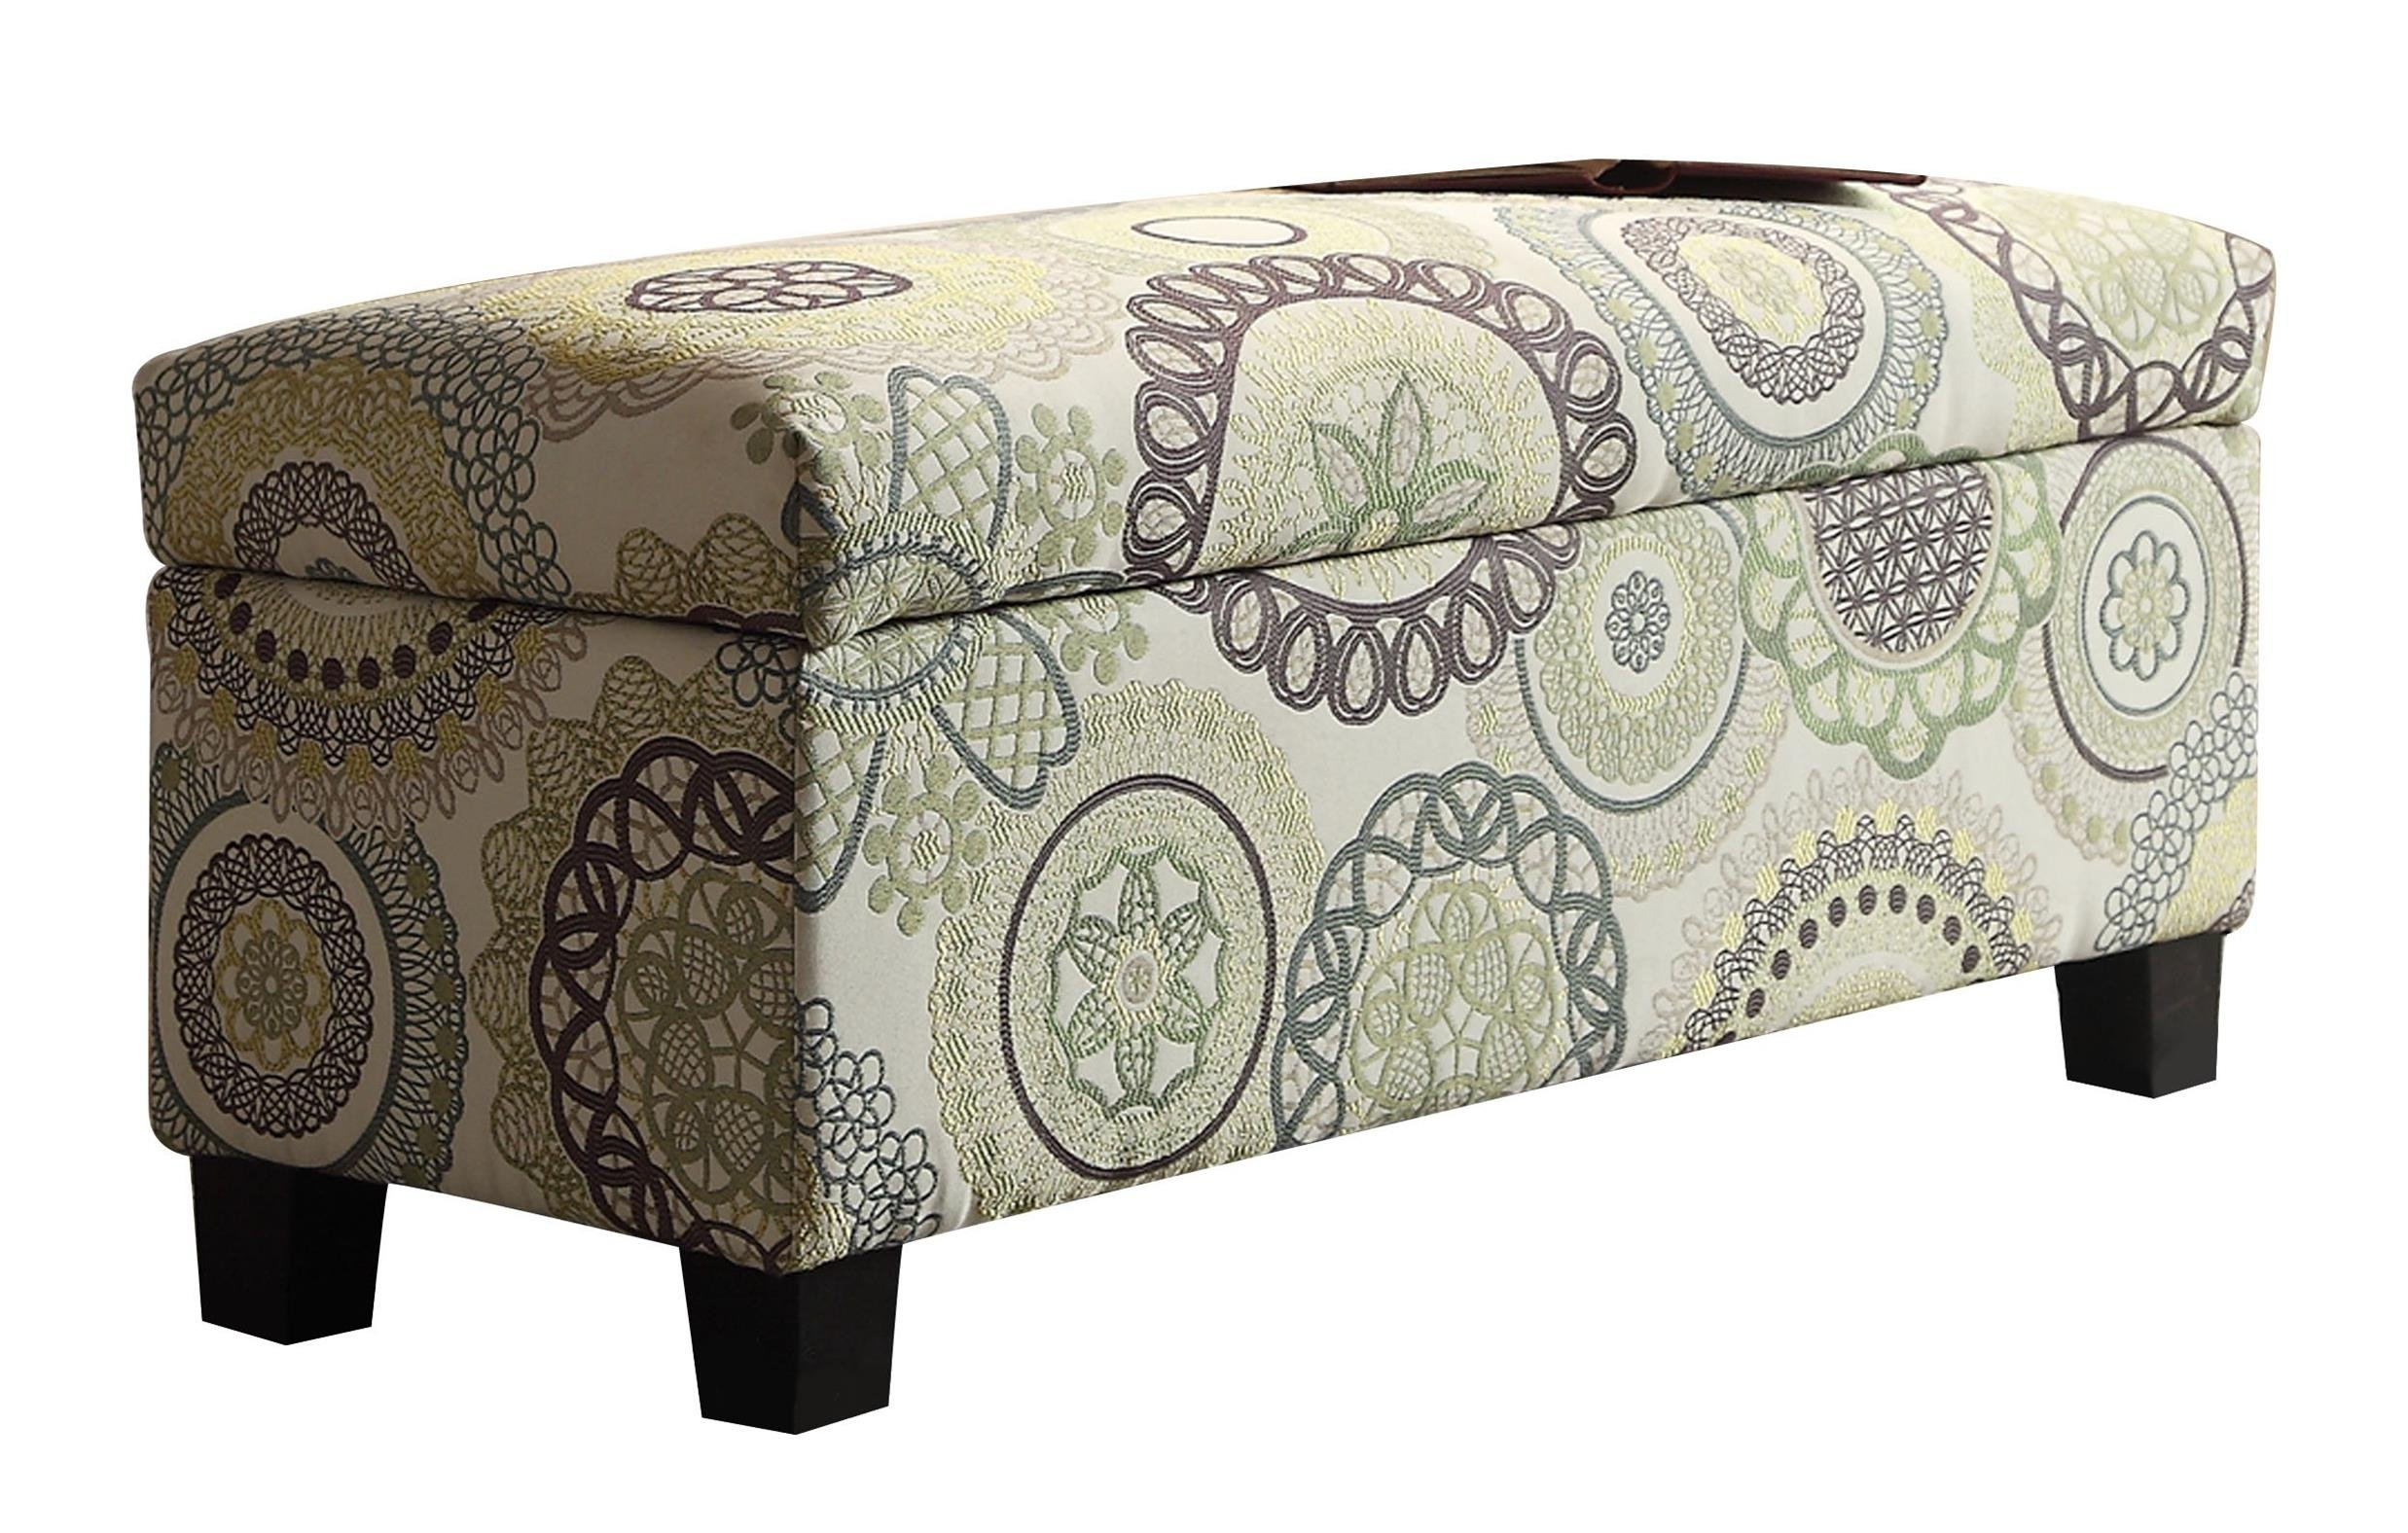 Homelegance 471FA-1S Lift Top Storage Bench, Floral Medallions Fabric